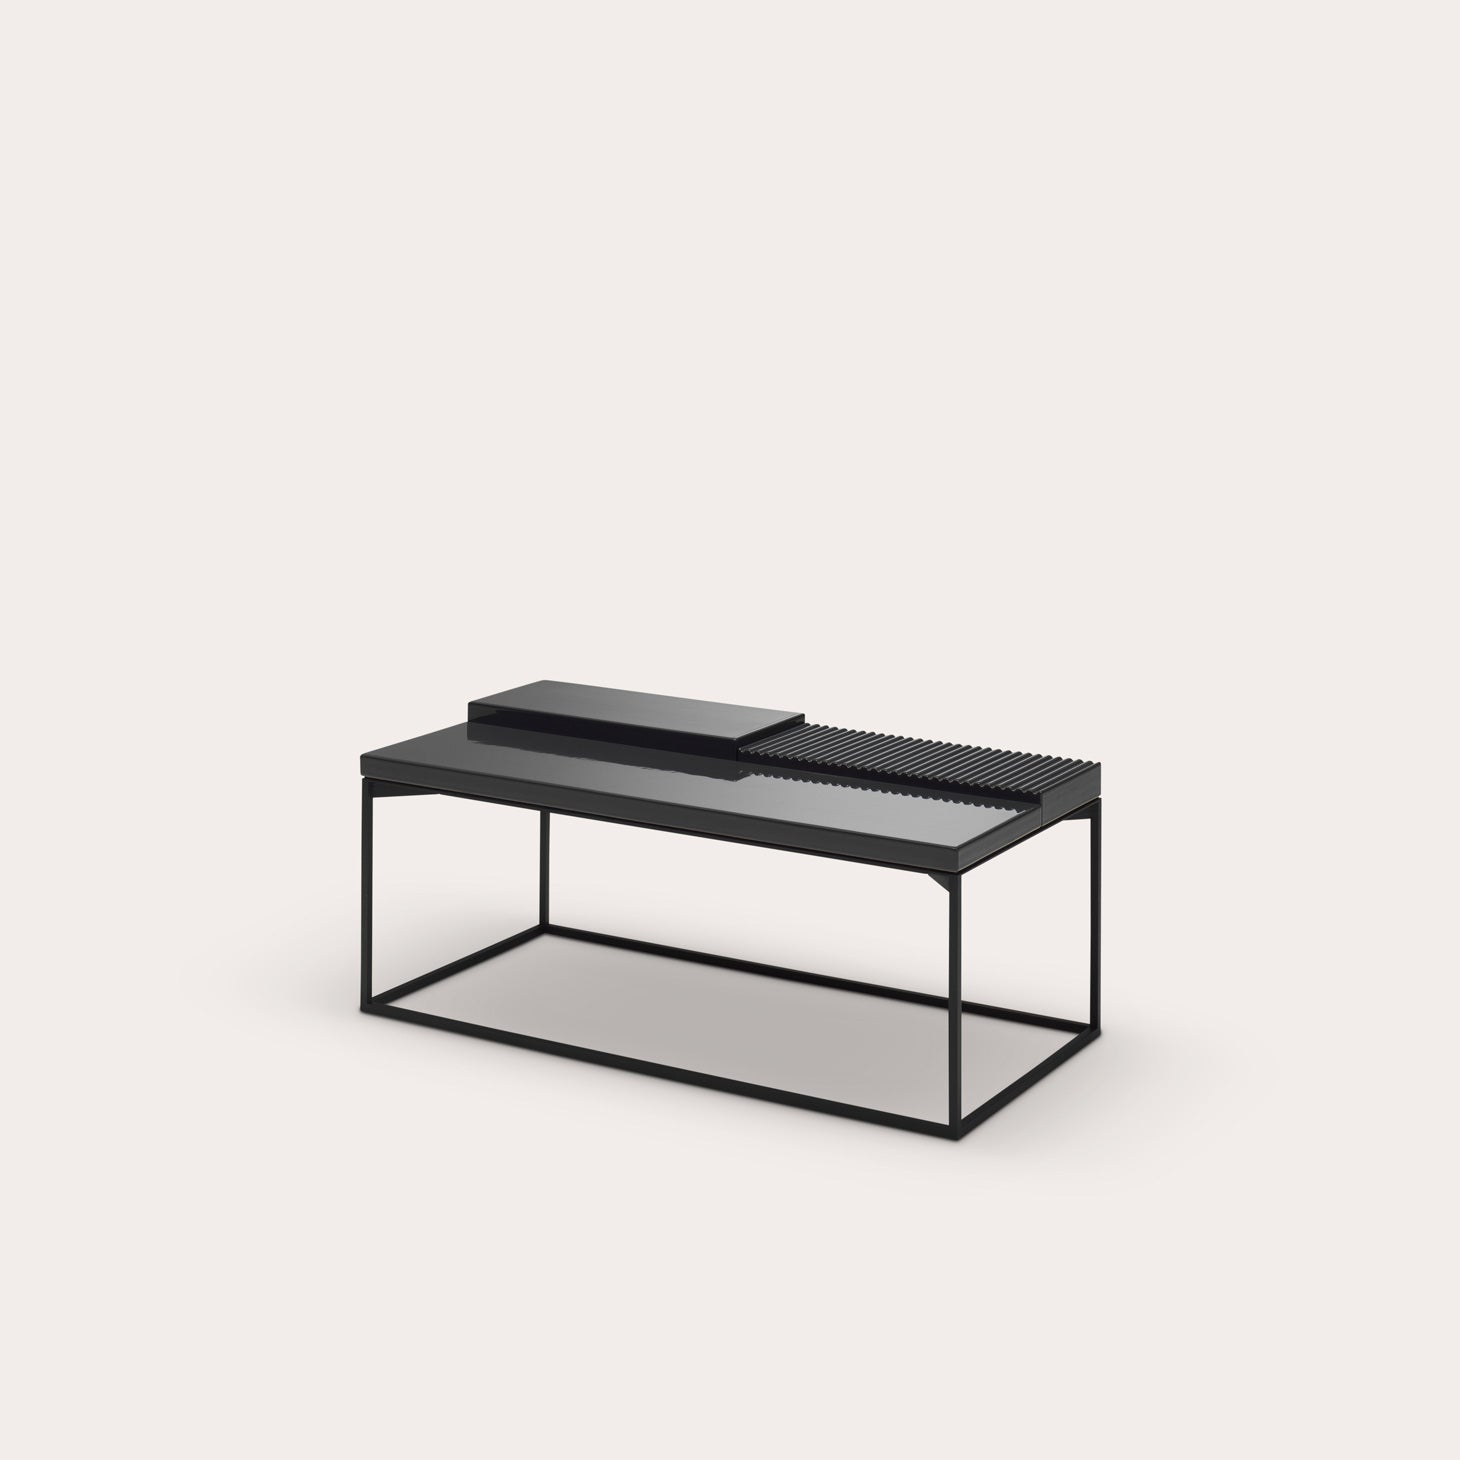 Terrace Coffee Table Tables Sebastian Herkner Designer Furniture Sku: 247-230-10322